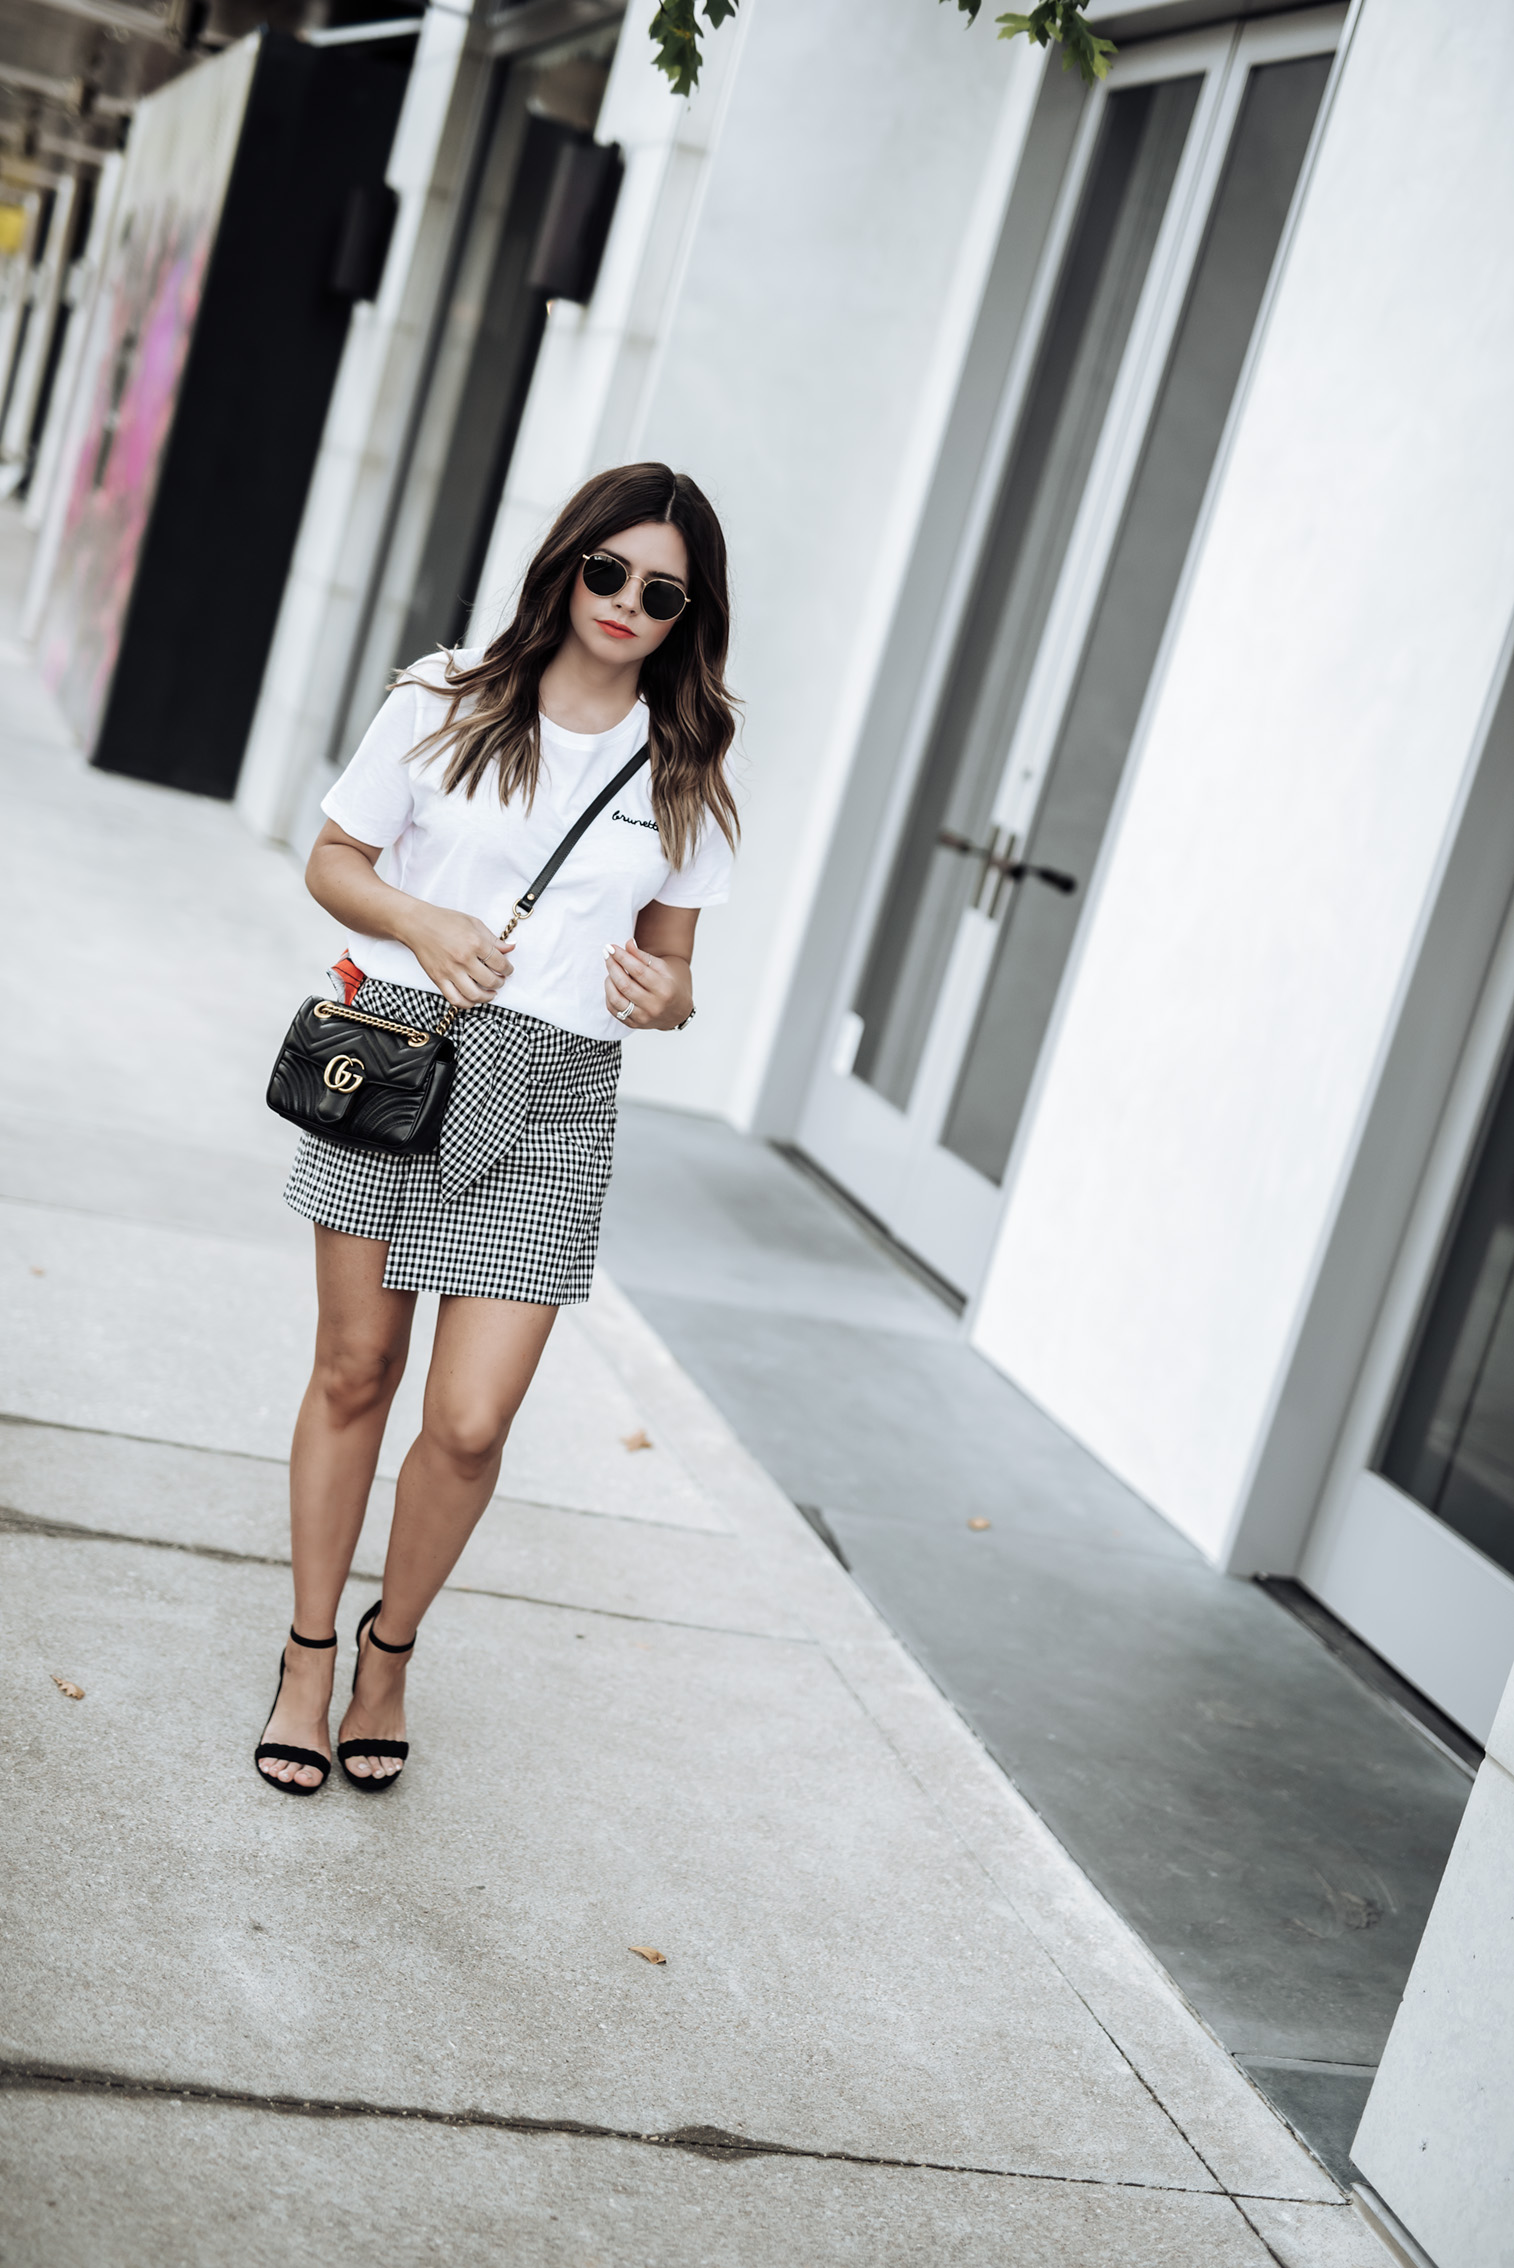 Tiffany Jais Houston fashion and lifestyle blogger | Gingham on repeat | Gingam outfit ideas, gucci marmot, street style outfit summer